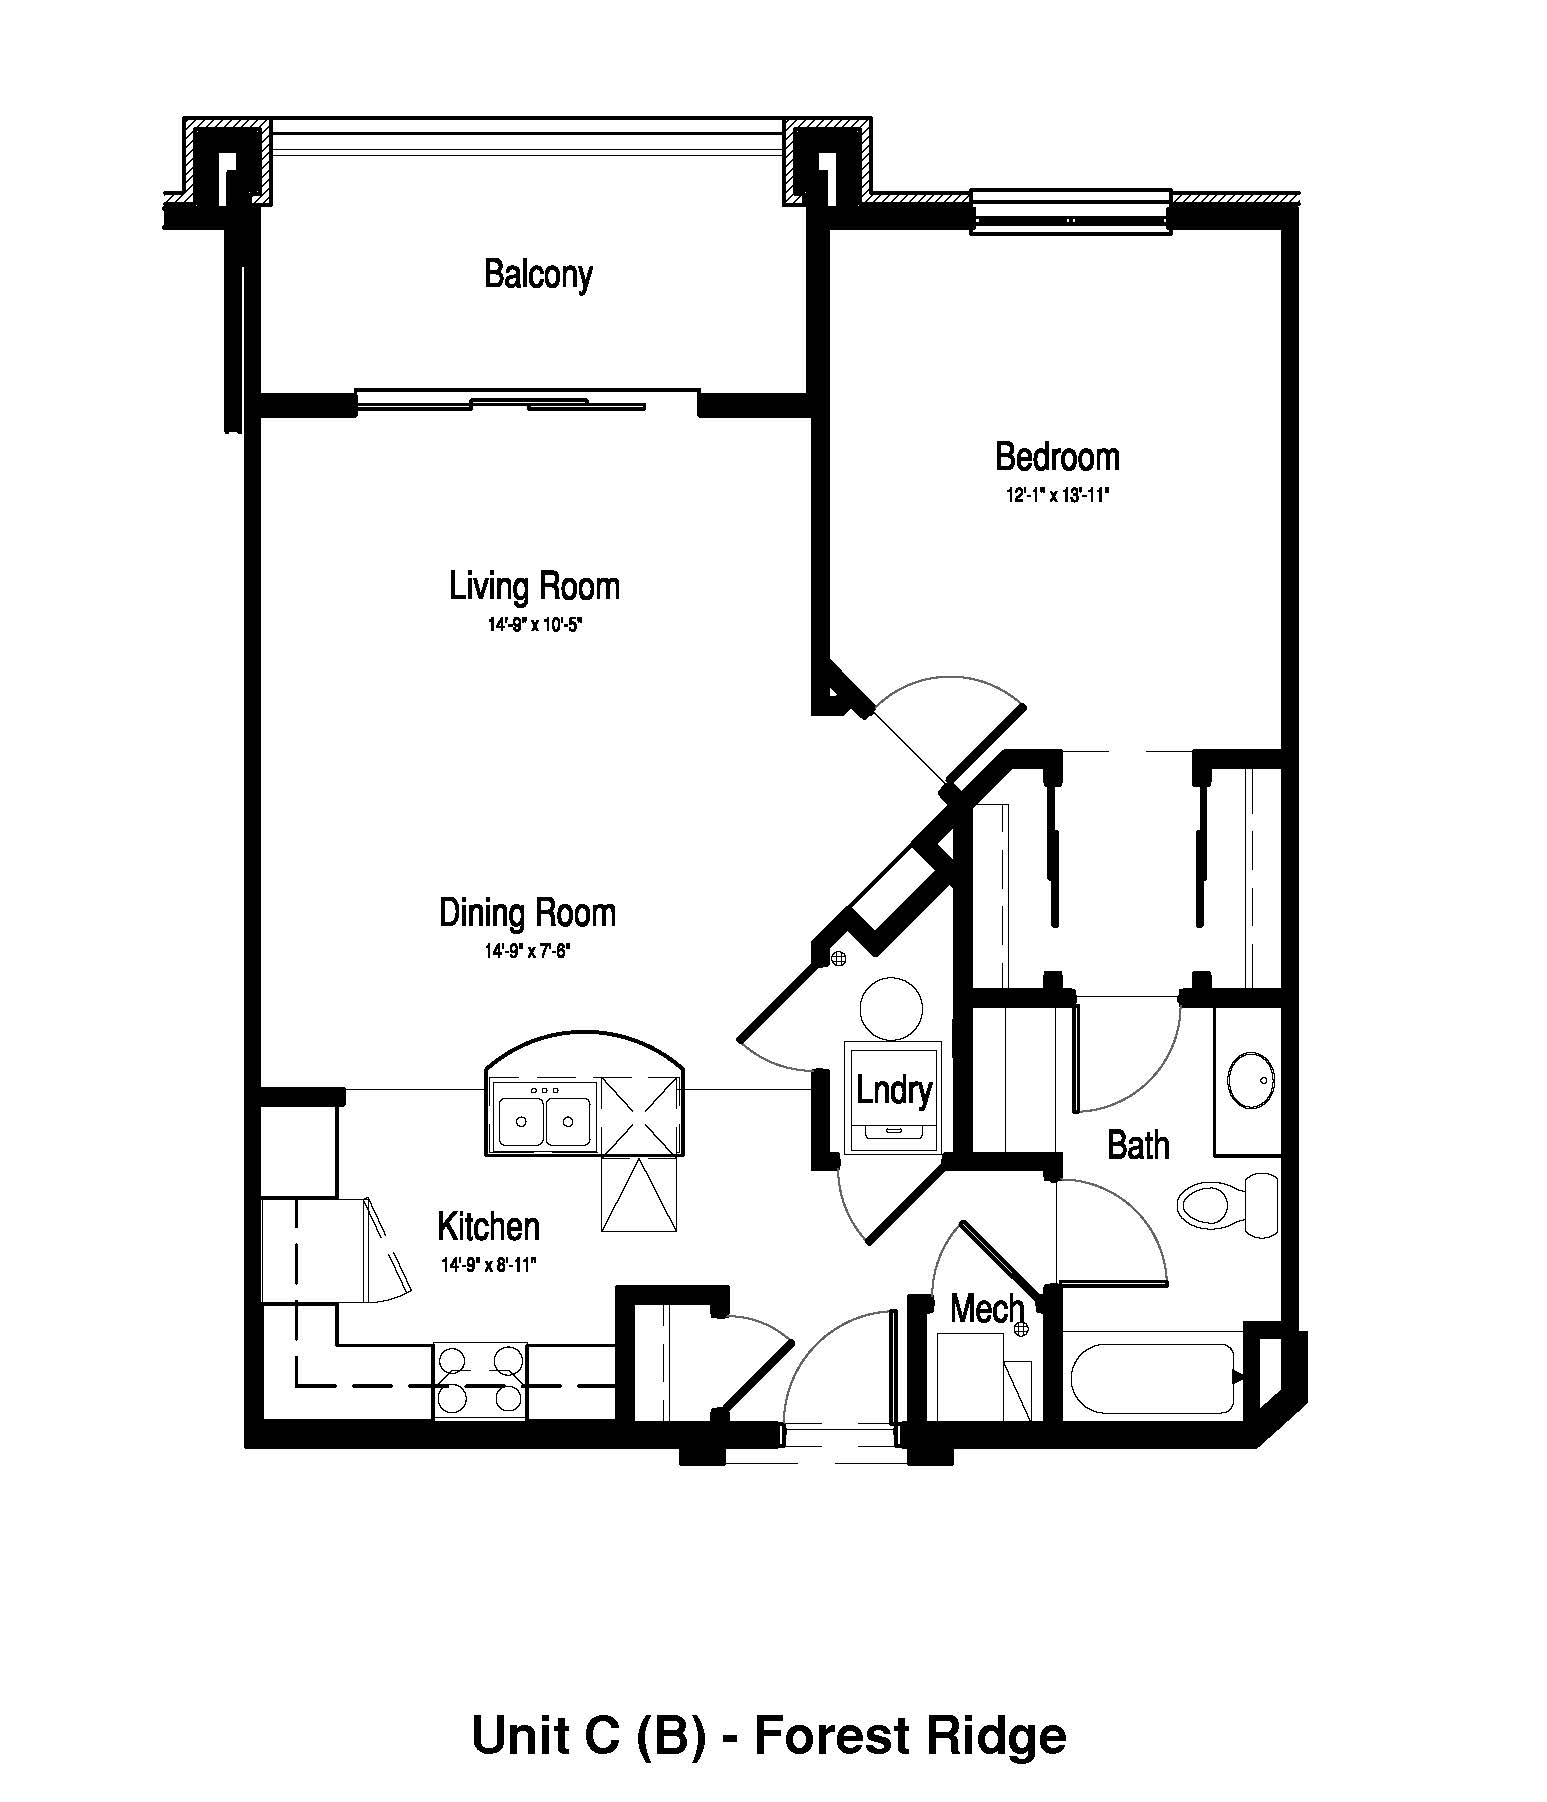 1 Bedroom, 1 Bath - 869 Sq. Ft. - Forest Ridge Expansion